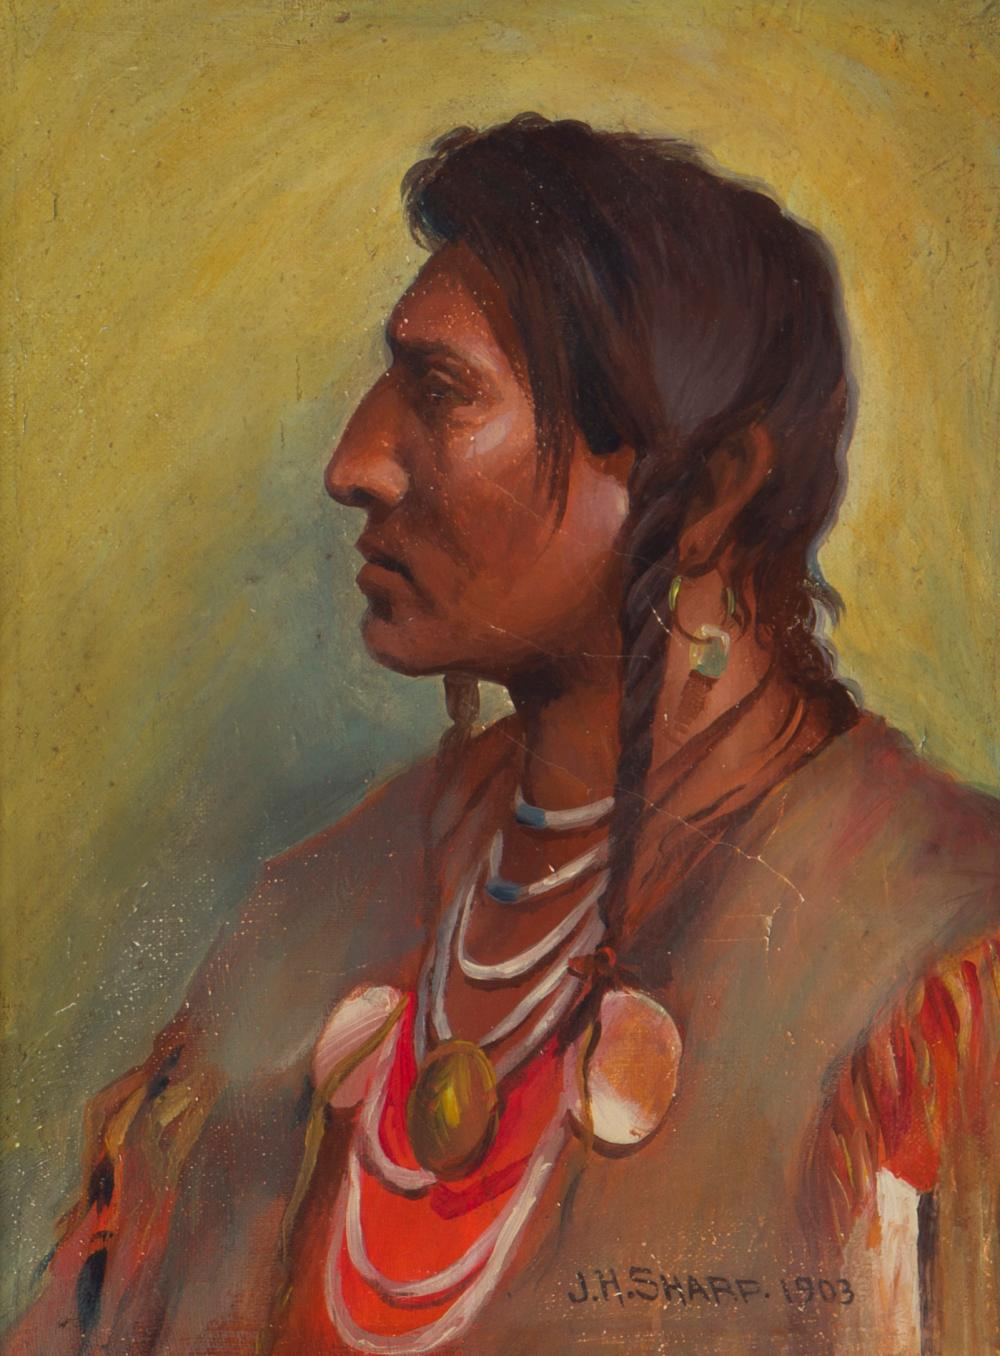 """Joseph Henry Sharp, (1859-1953 Pasadena, CA), Sioux Indian in profile, 1903, Oil on canvas, 12.5"""" H x 9.25"""" W"""